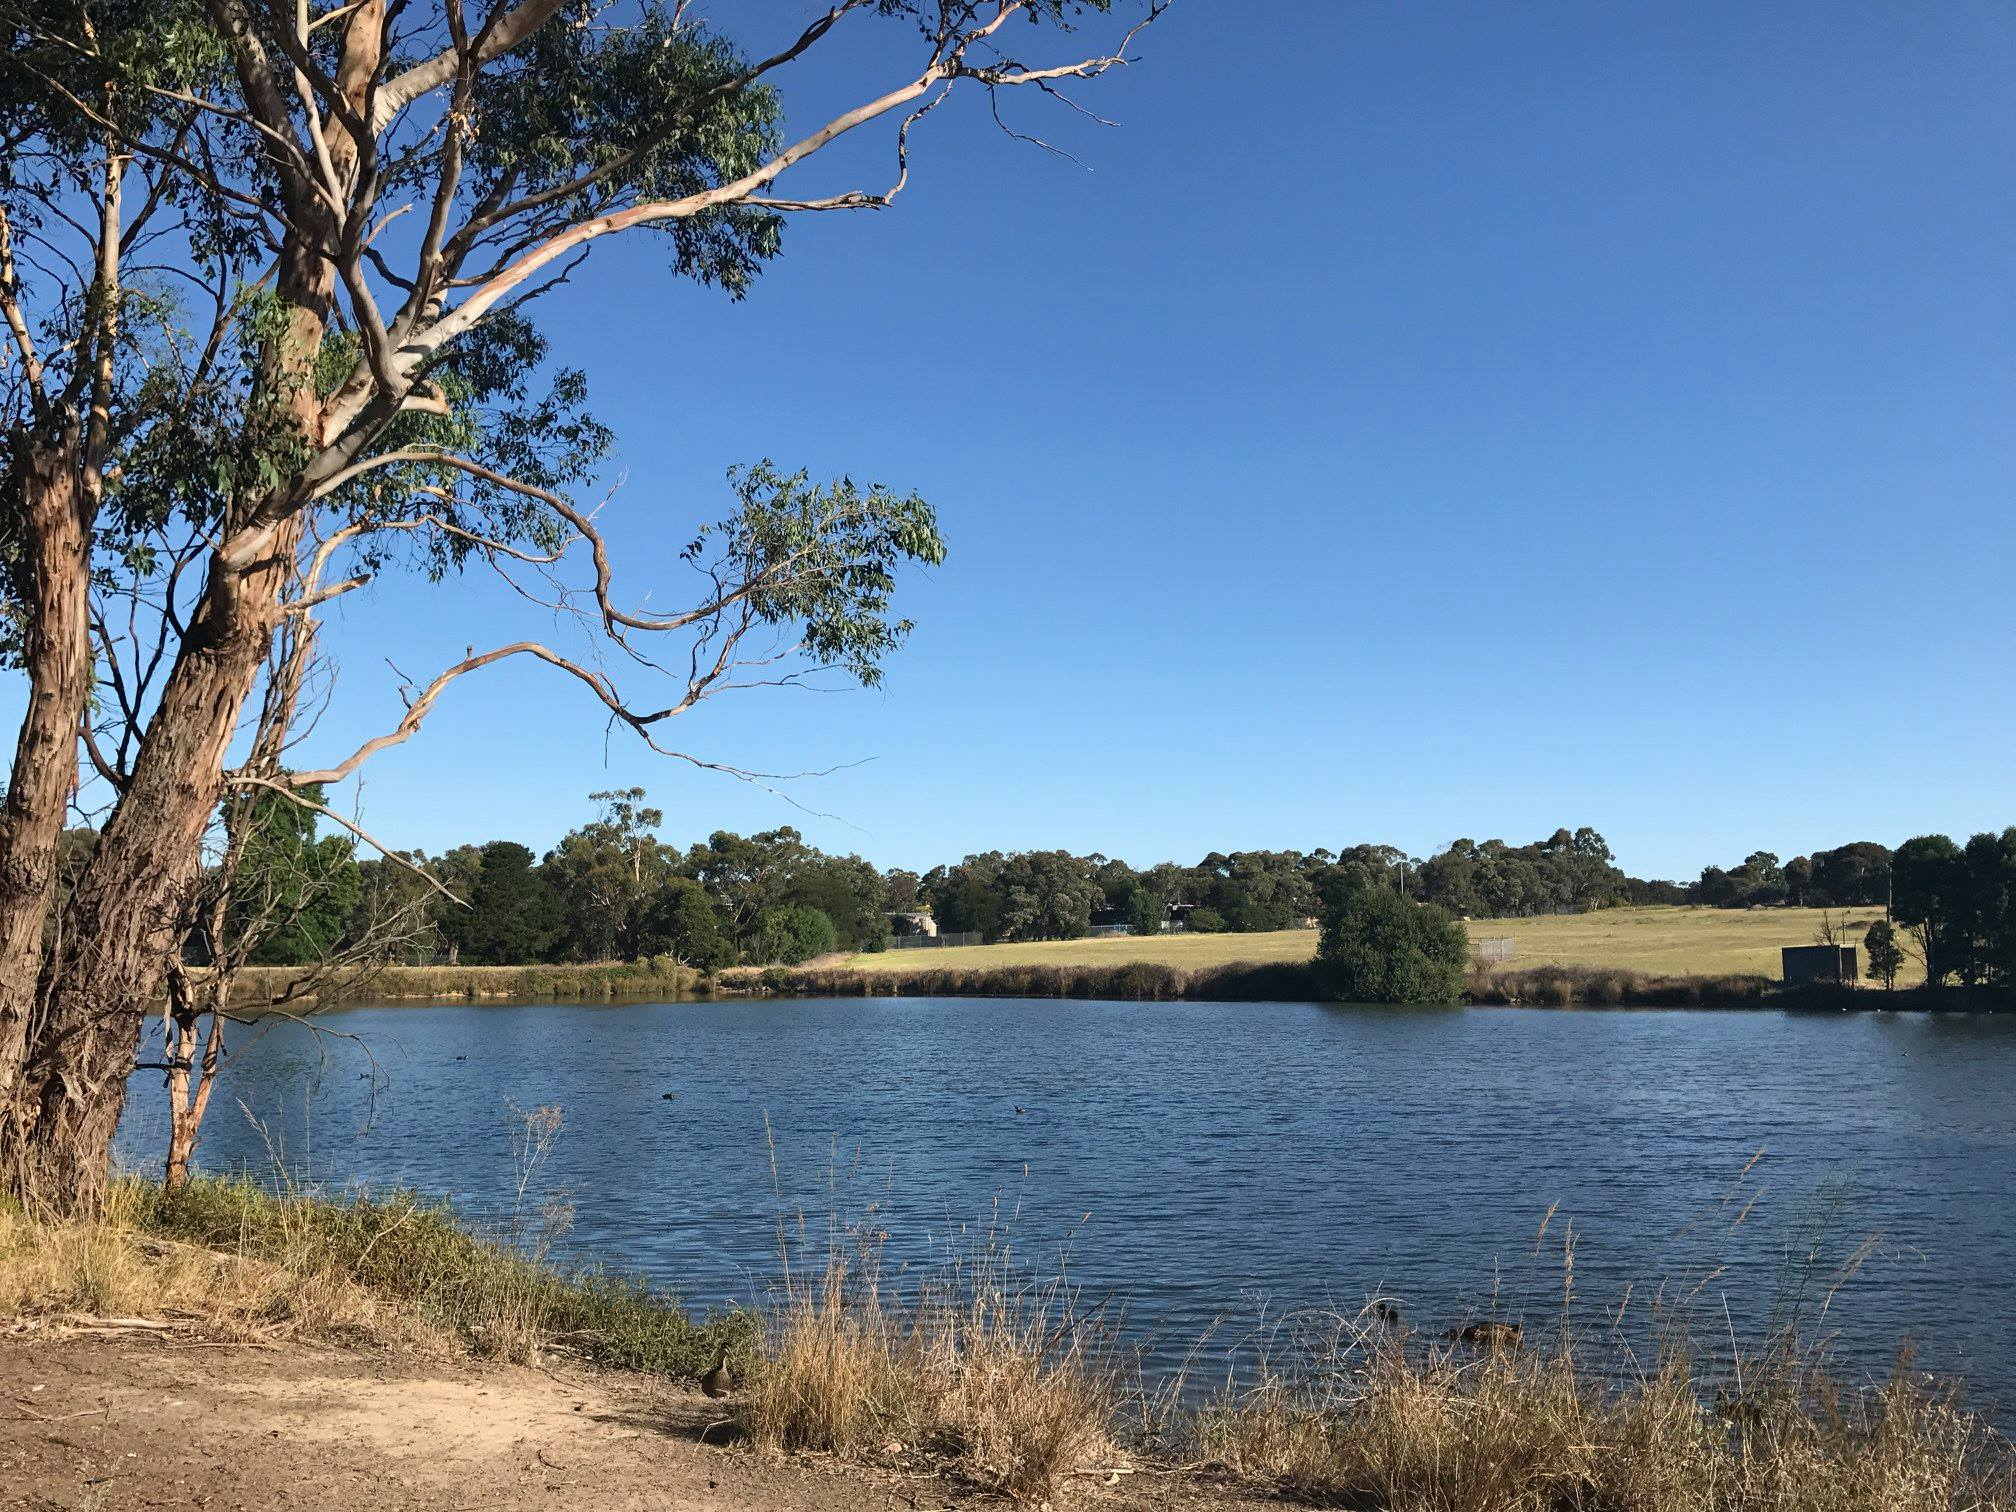 Development Victoria intends to fill in Lake Knox to create a new blank canvas on which to meet stormwater requirements for housing developments.